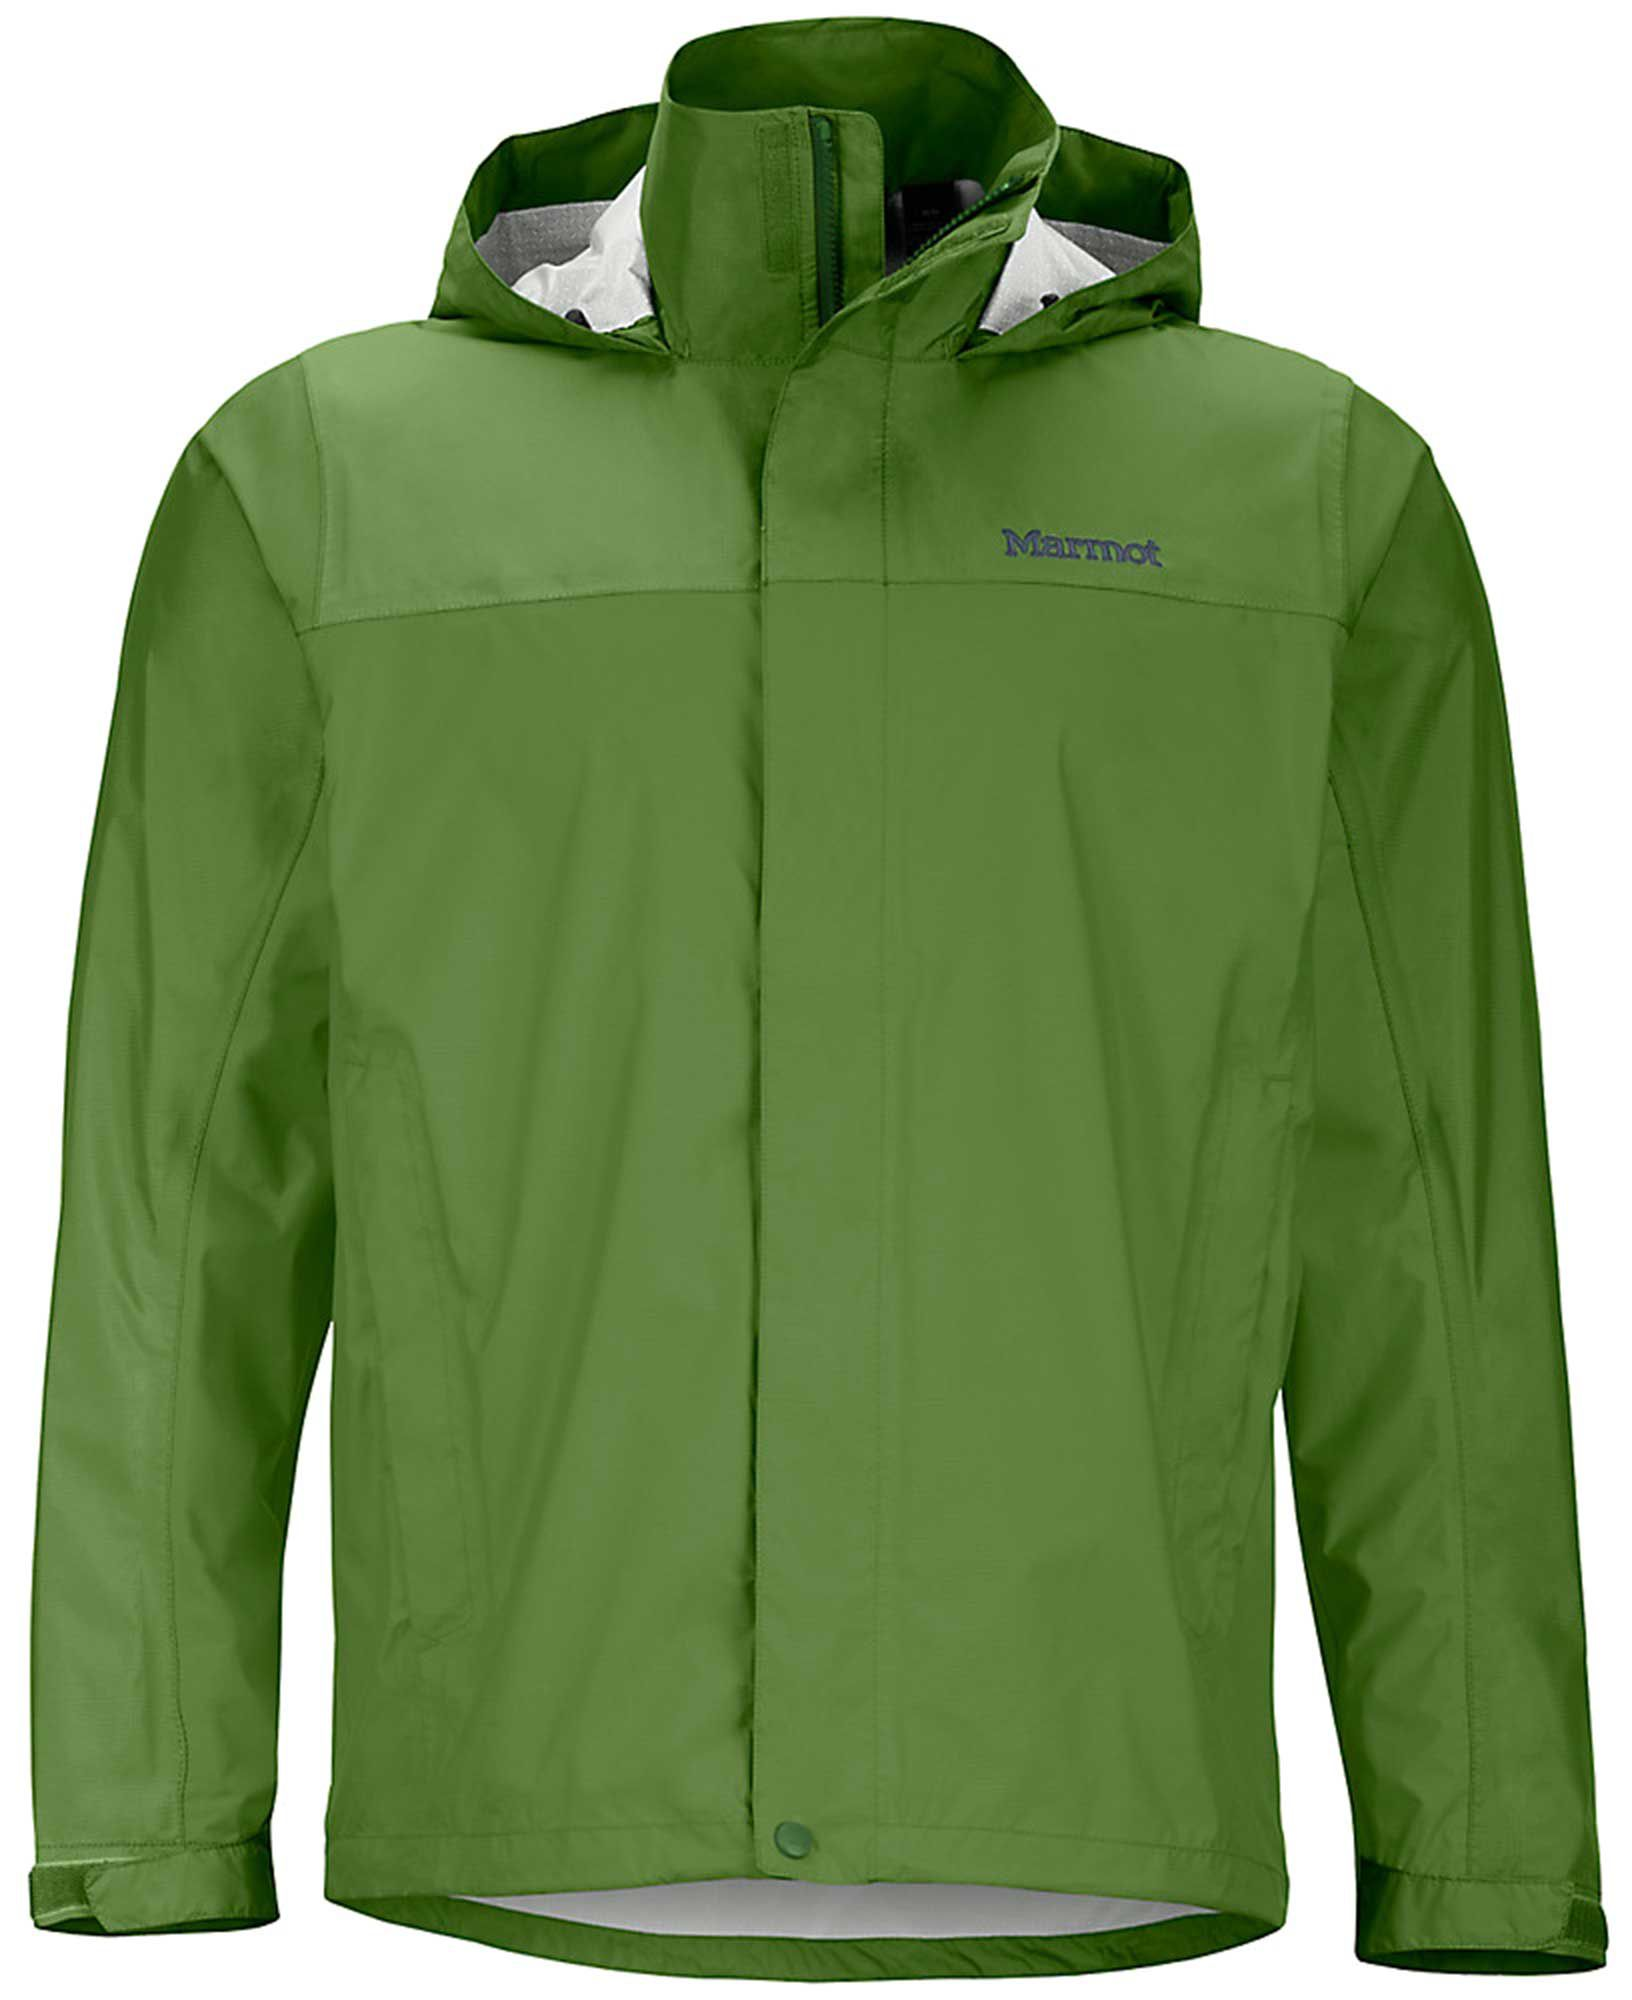 Marmot Men's PreCip Rain Jacket | DICK'S Sporting Goods